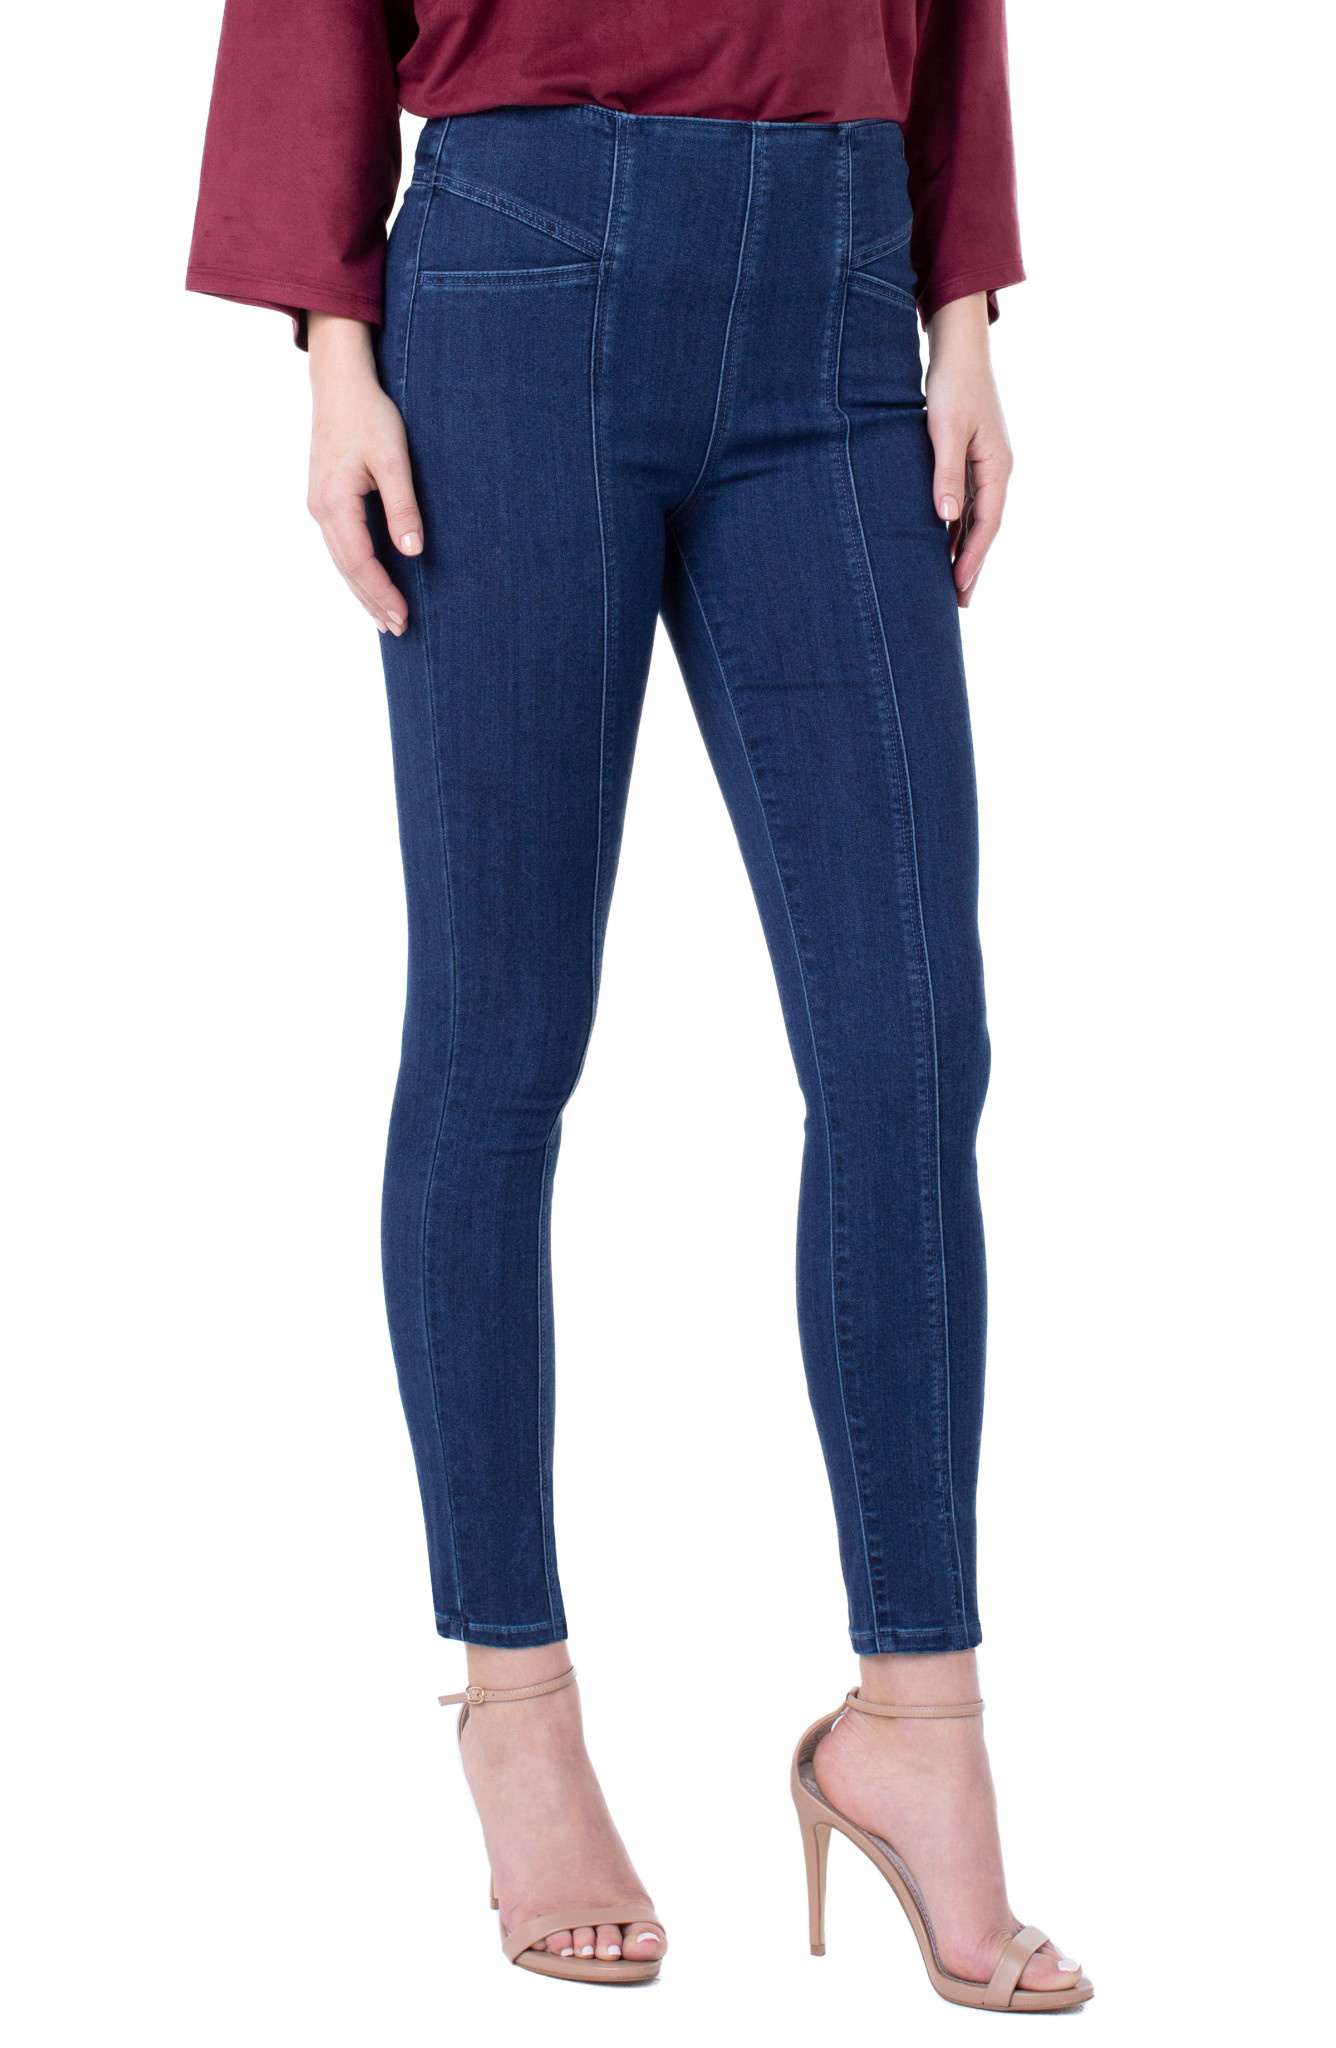 LIVERPOOL LIVERPOOL REESE HIGH RISE SKINNY ANKLE